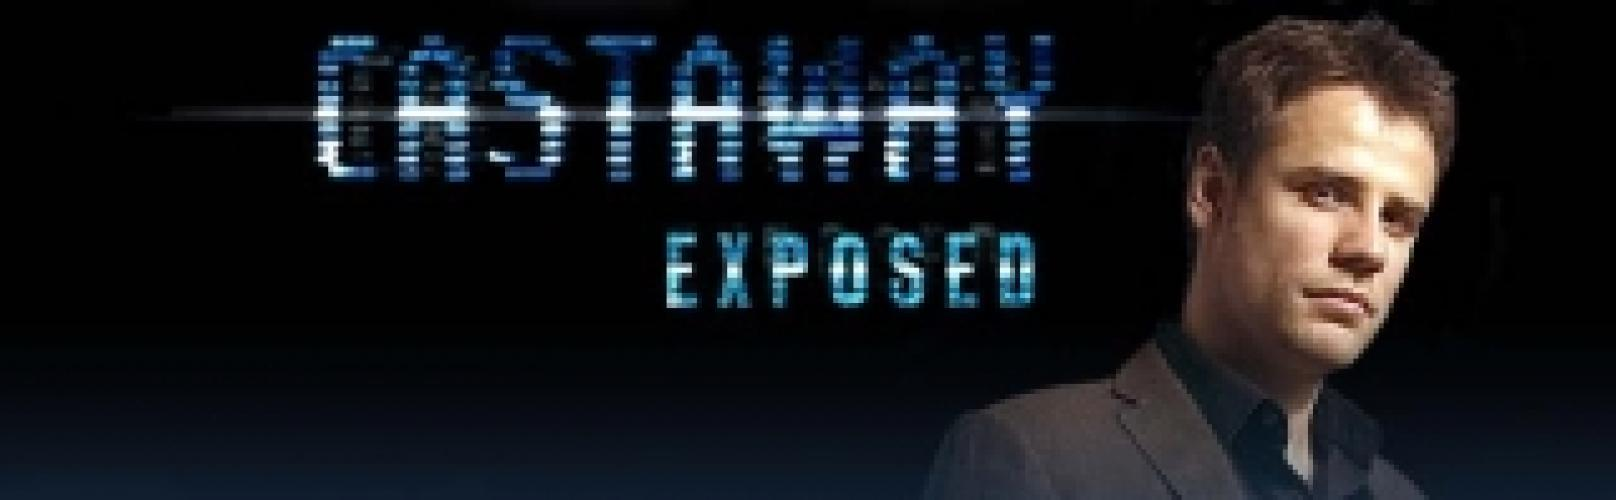 Castaway Exposed next episode air date poster